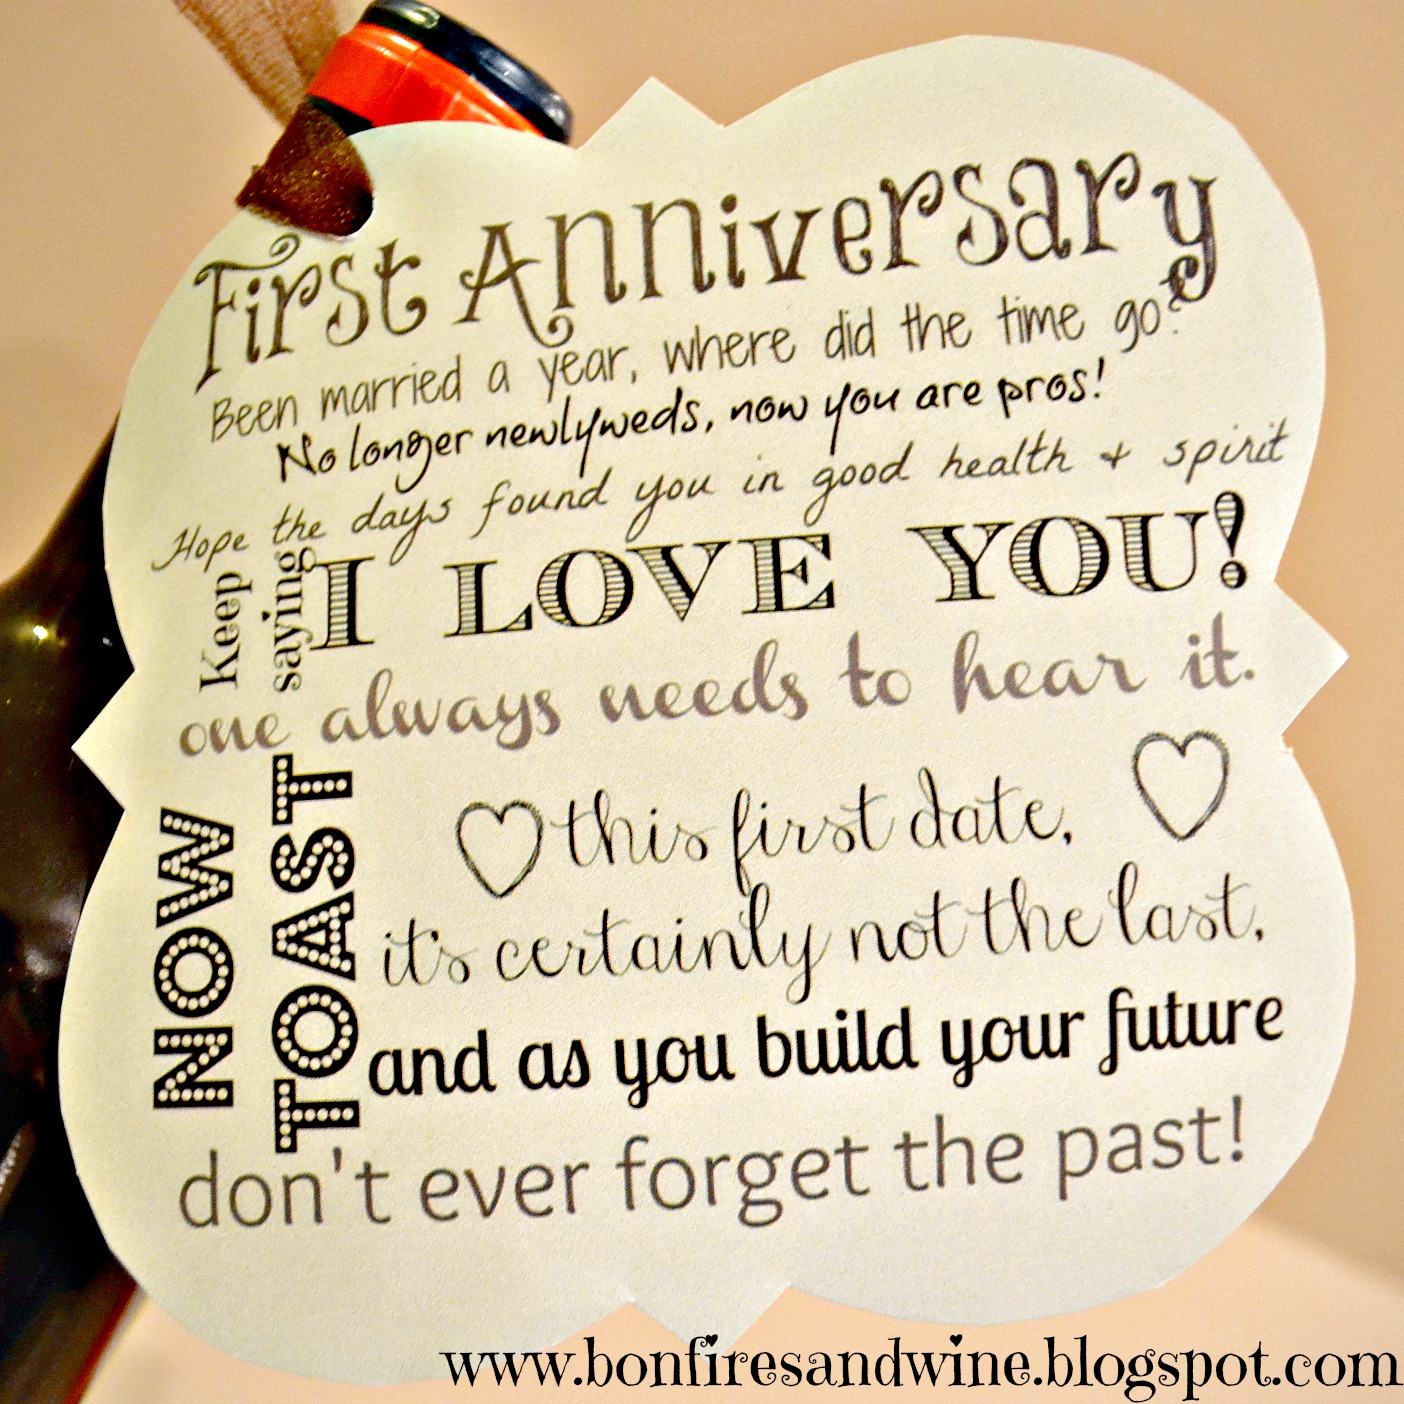 1 Year Wedding Anniversary Picture Ideas : anniversary one year anniversary poems first anniversary one year ...